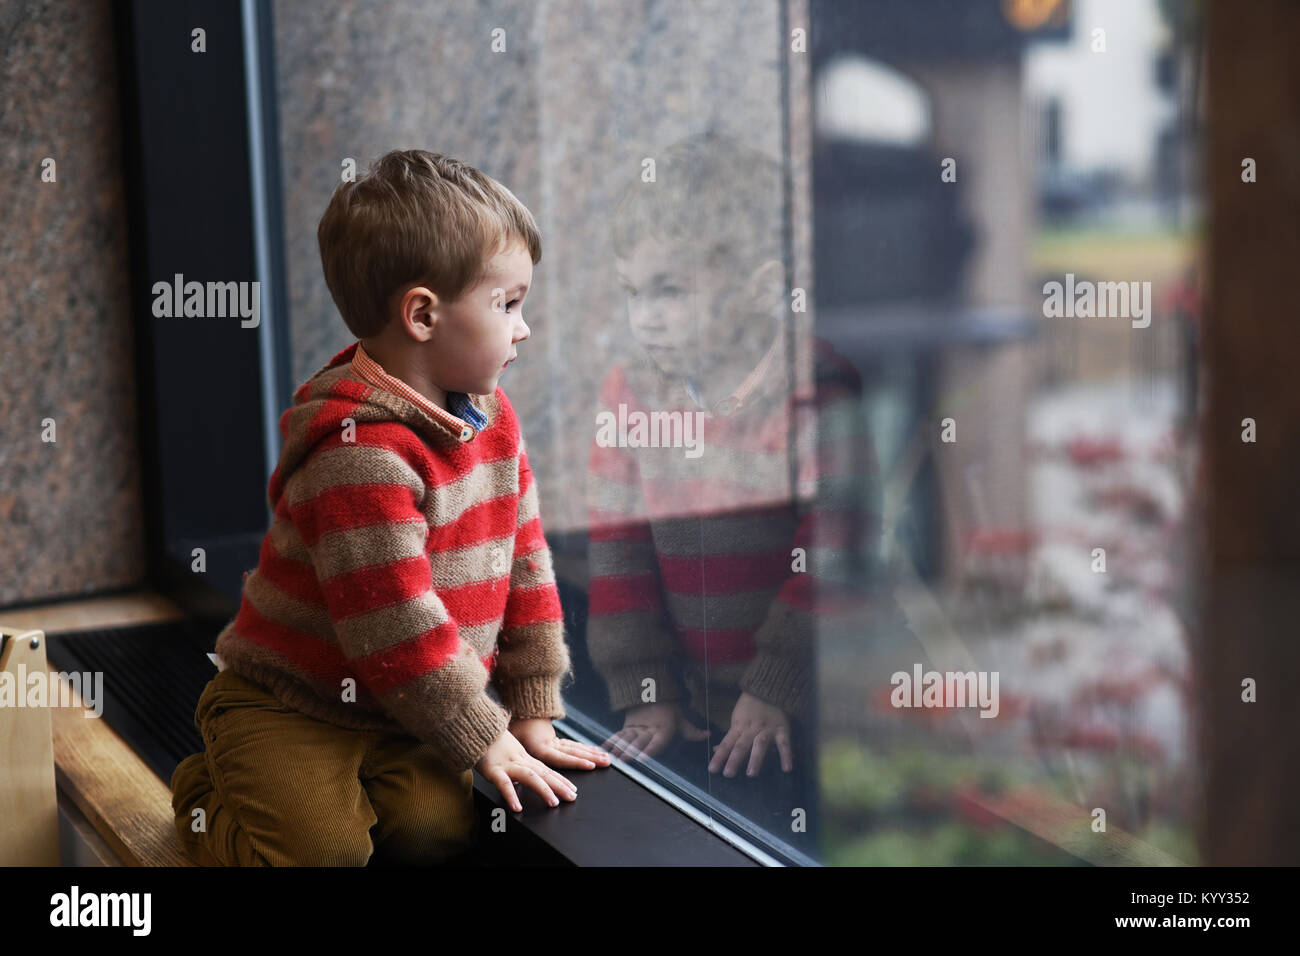 Boy looking through window while kneeling at home - Stock Image